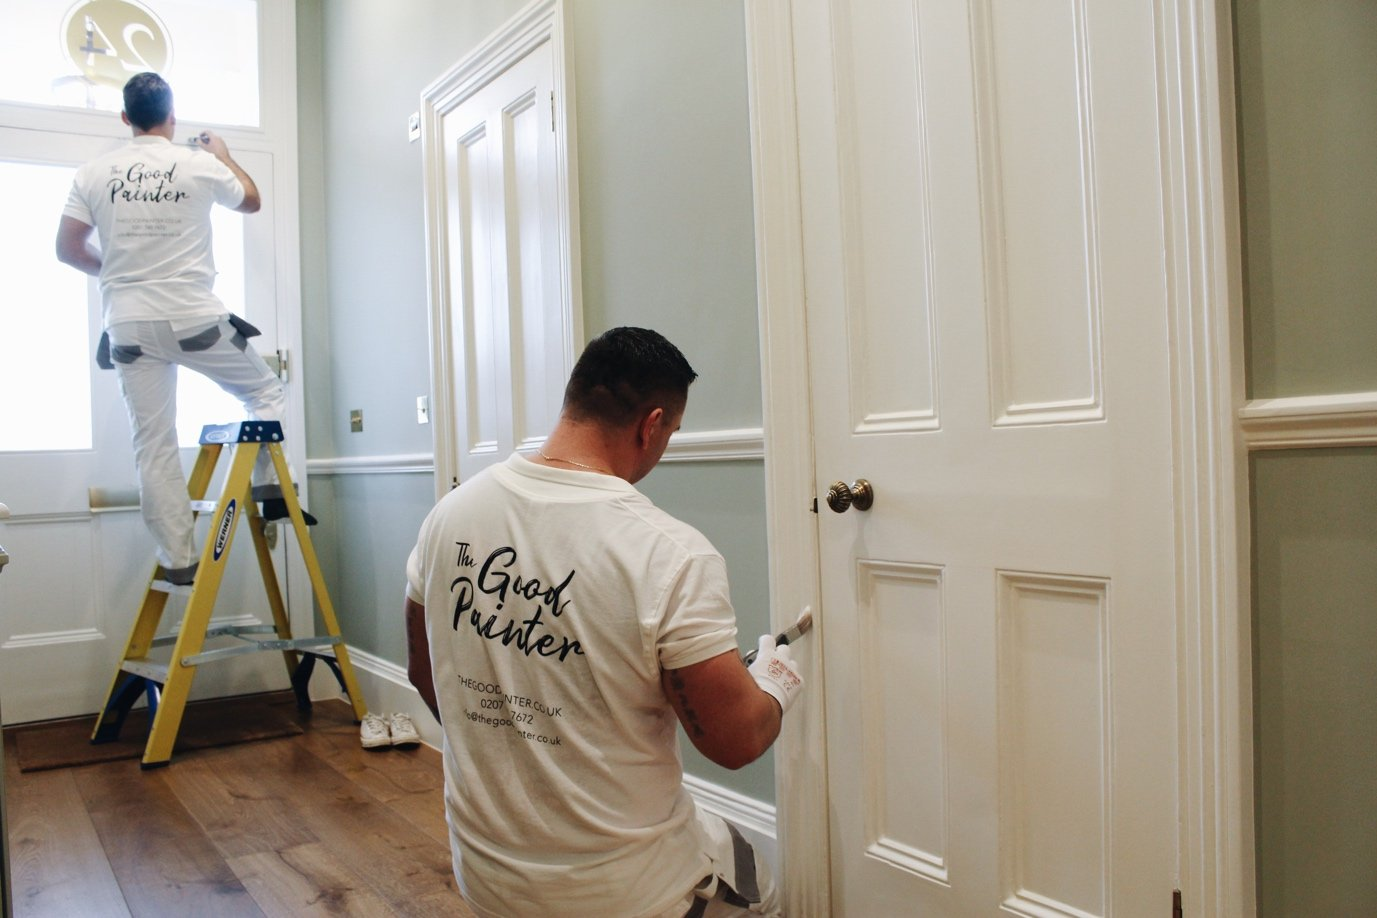 The Good Painter team with Farrow and Ball painting -painters and decorators based in London - painting in progress